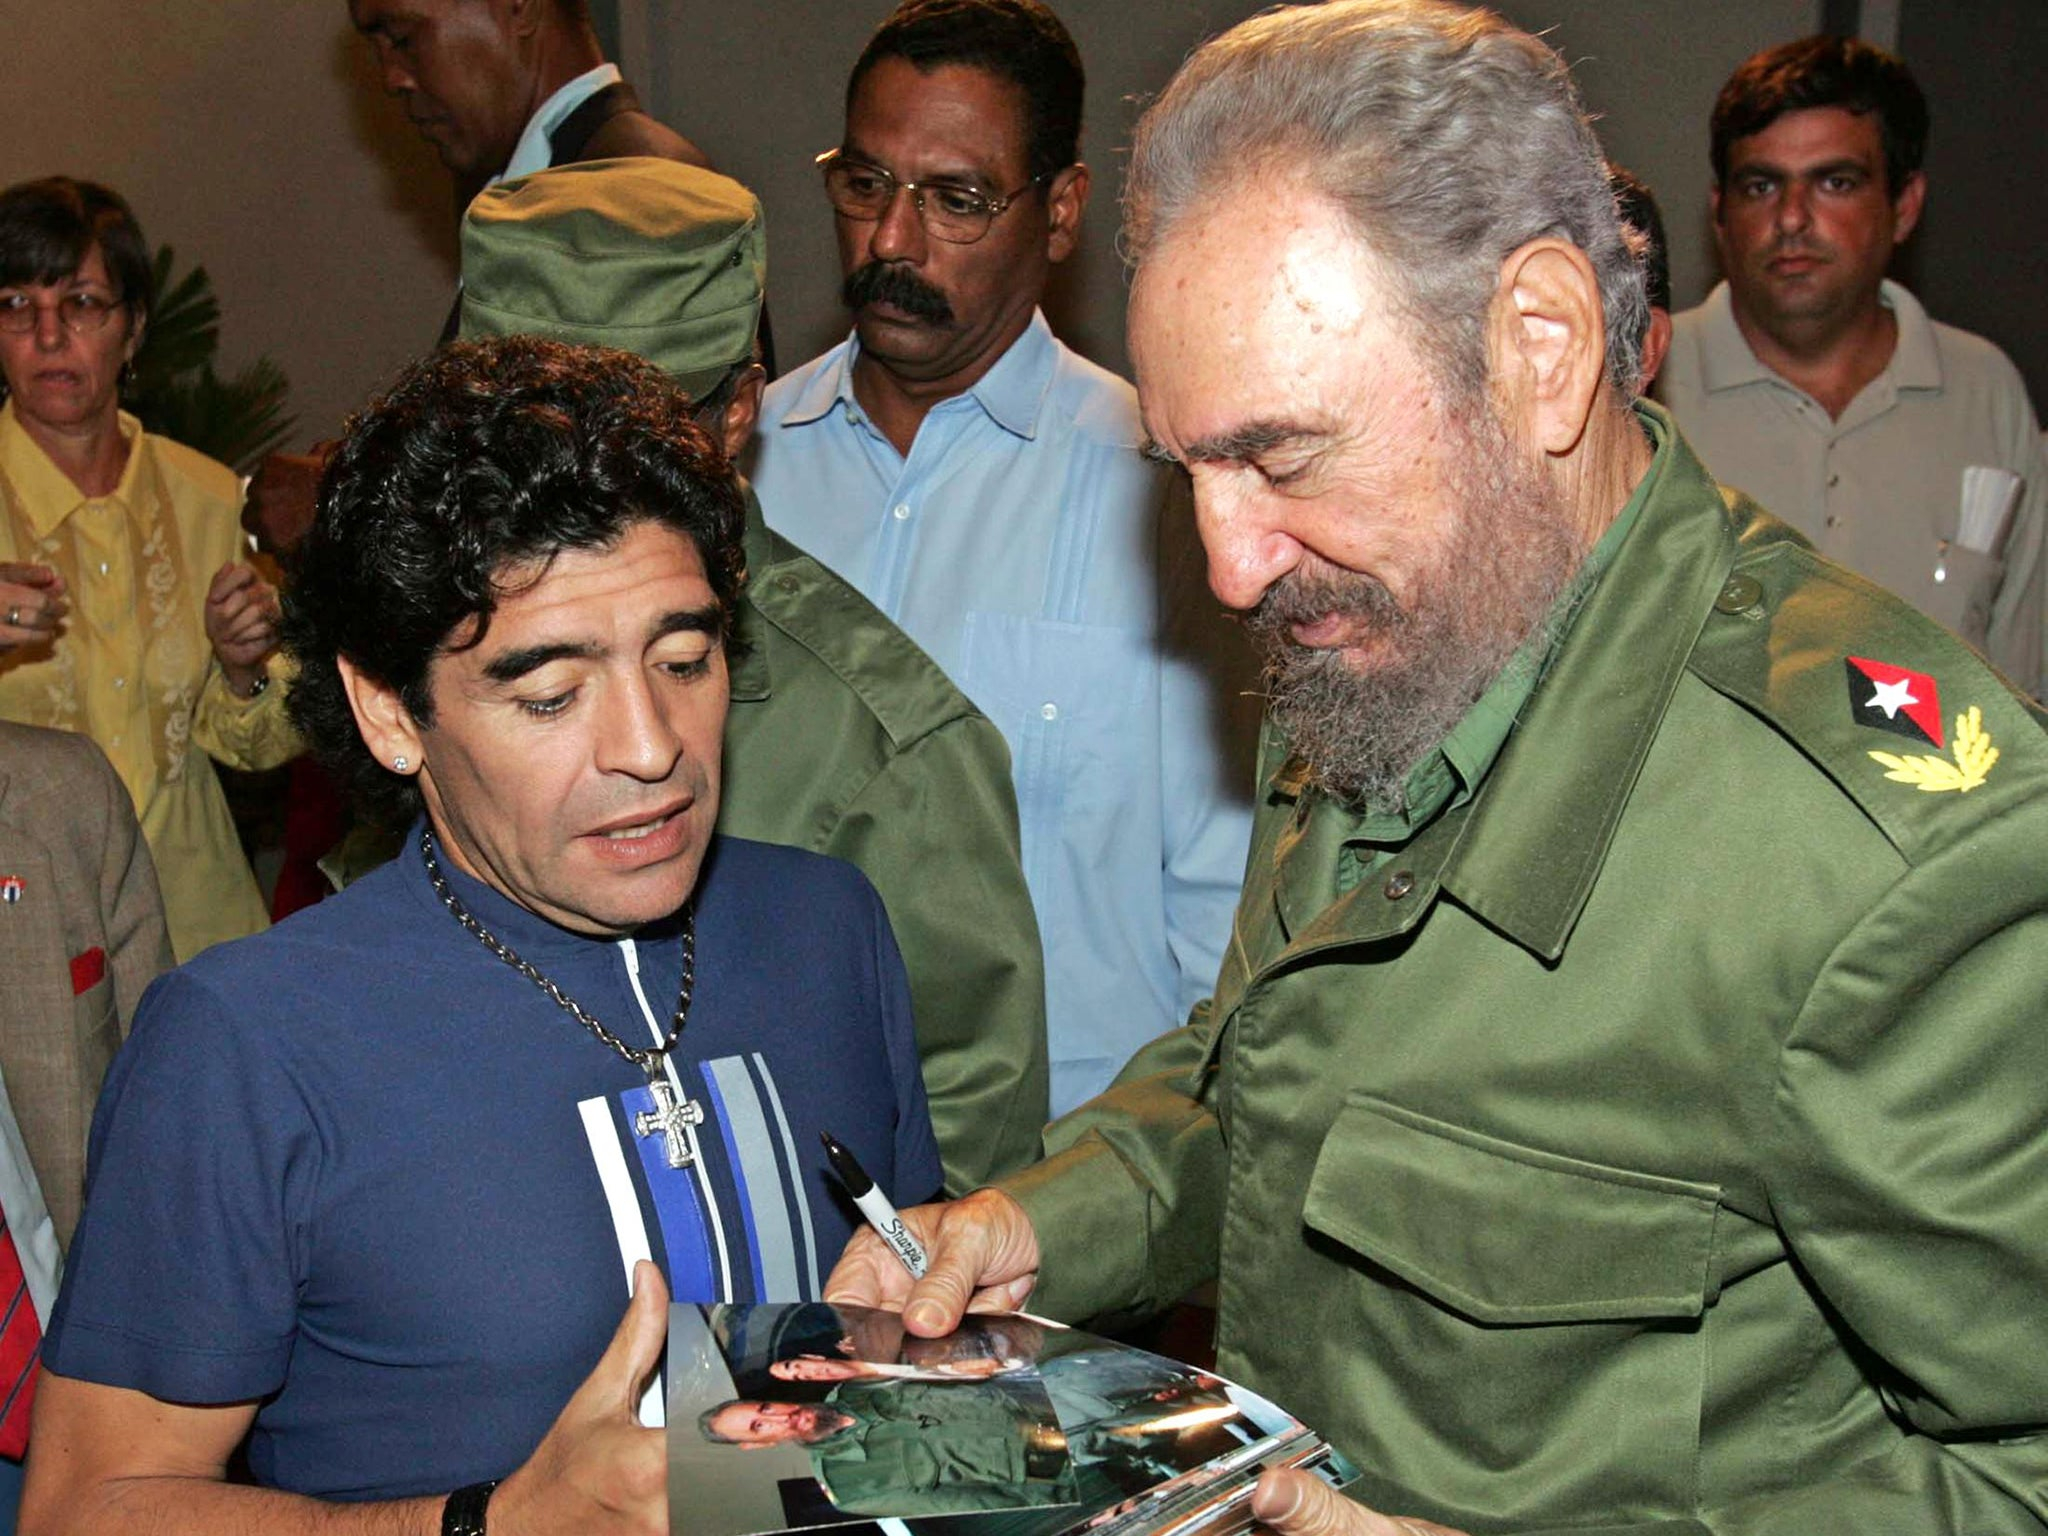 Maradona reports that Fidel Castro is alive and well